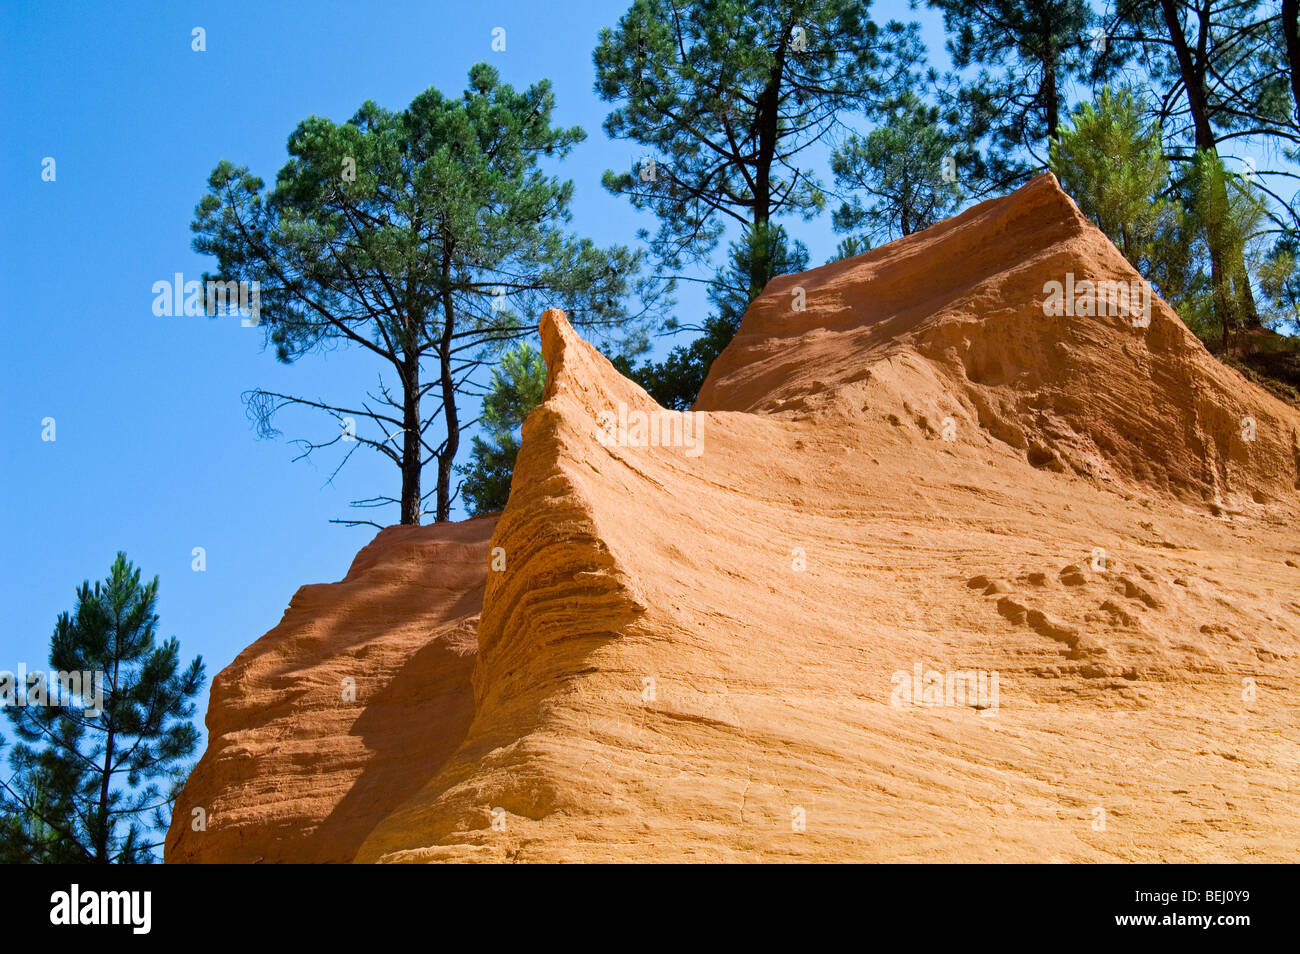 Red rocks of the old ochre quarry at Roussillon, Vaucluse, Provence-Alpes-Côte d'Azur, Provence, France - Stock Image